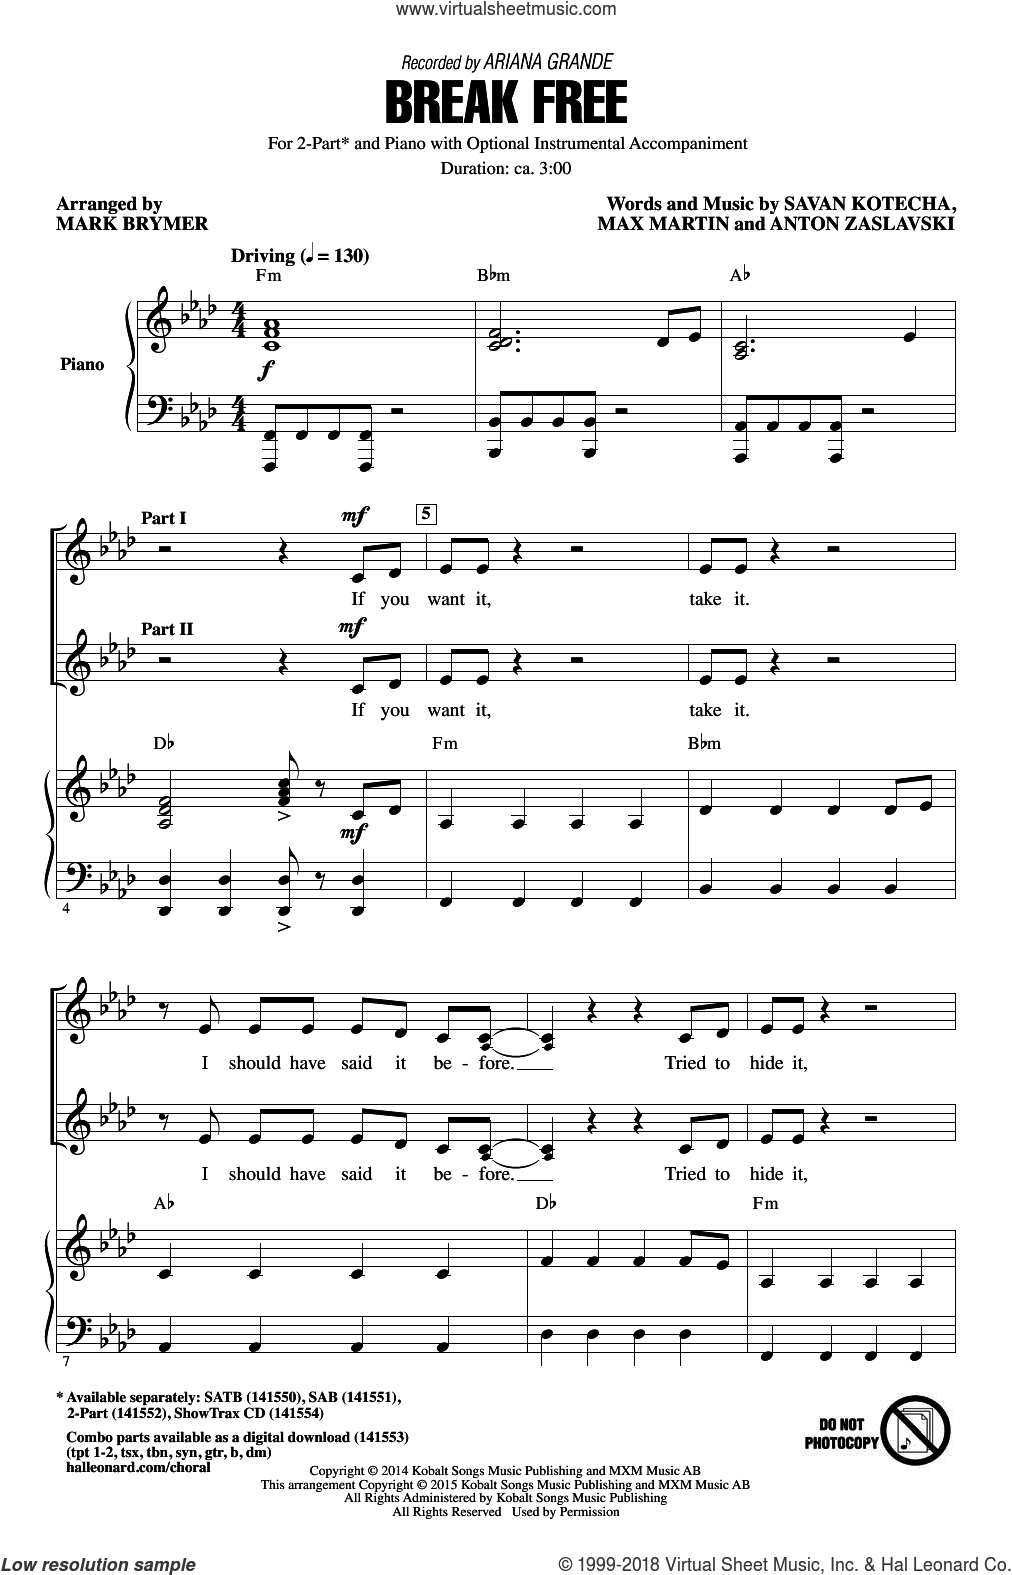 Break Free sheet music for choir (duets) by Mark Brymer, Ariana Grande, Anton Zaslavski, Max Martin and Savan Kotecha. Score Image Preview.